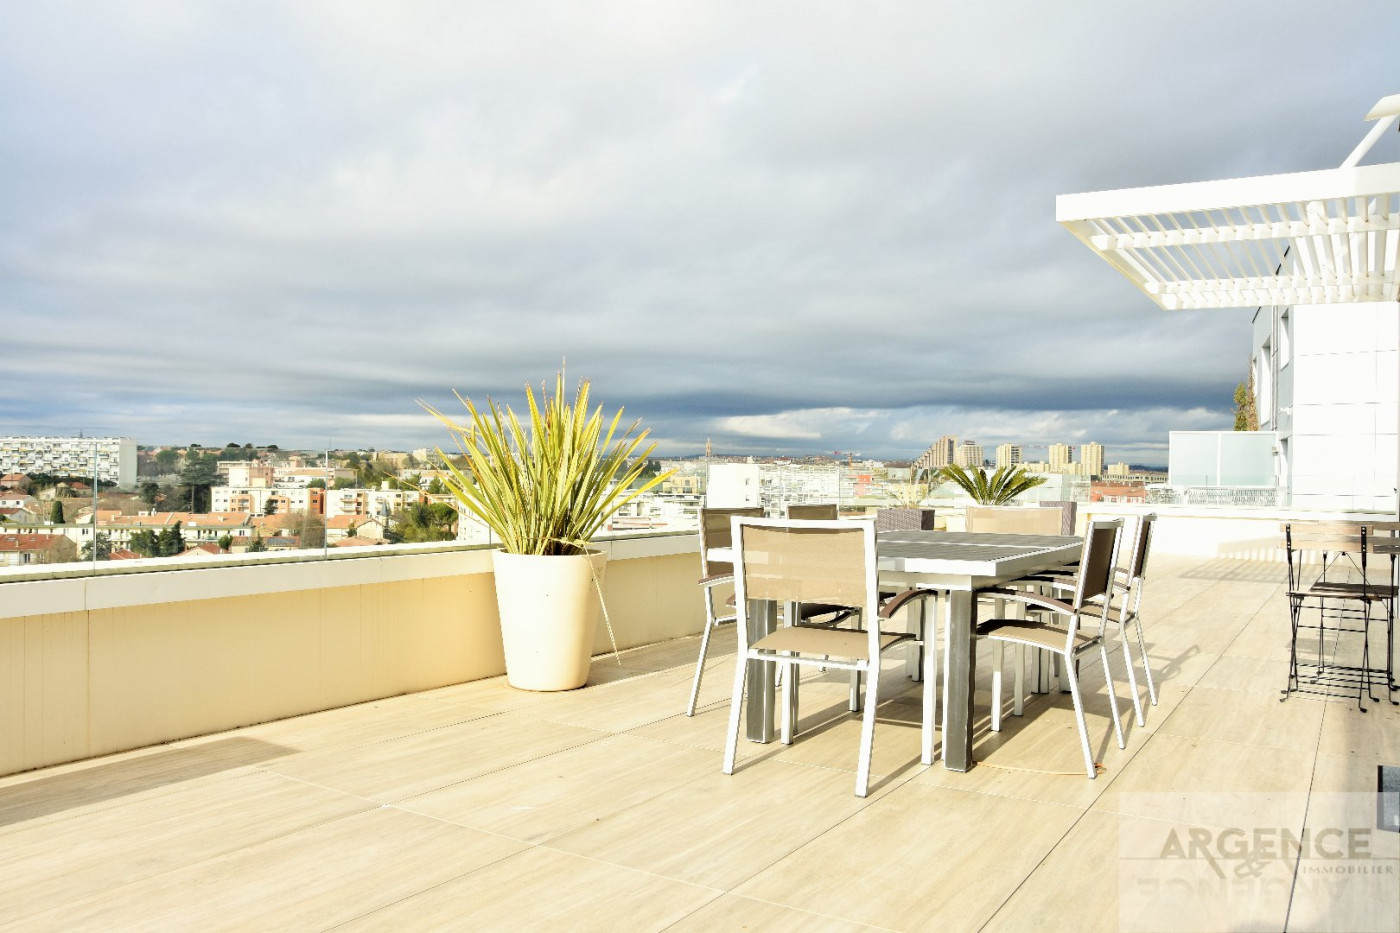 A vendre Montpellier 345335376 Argence immobilier